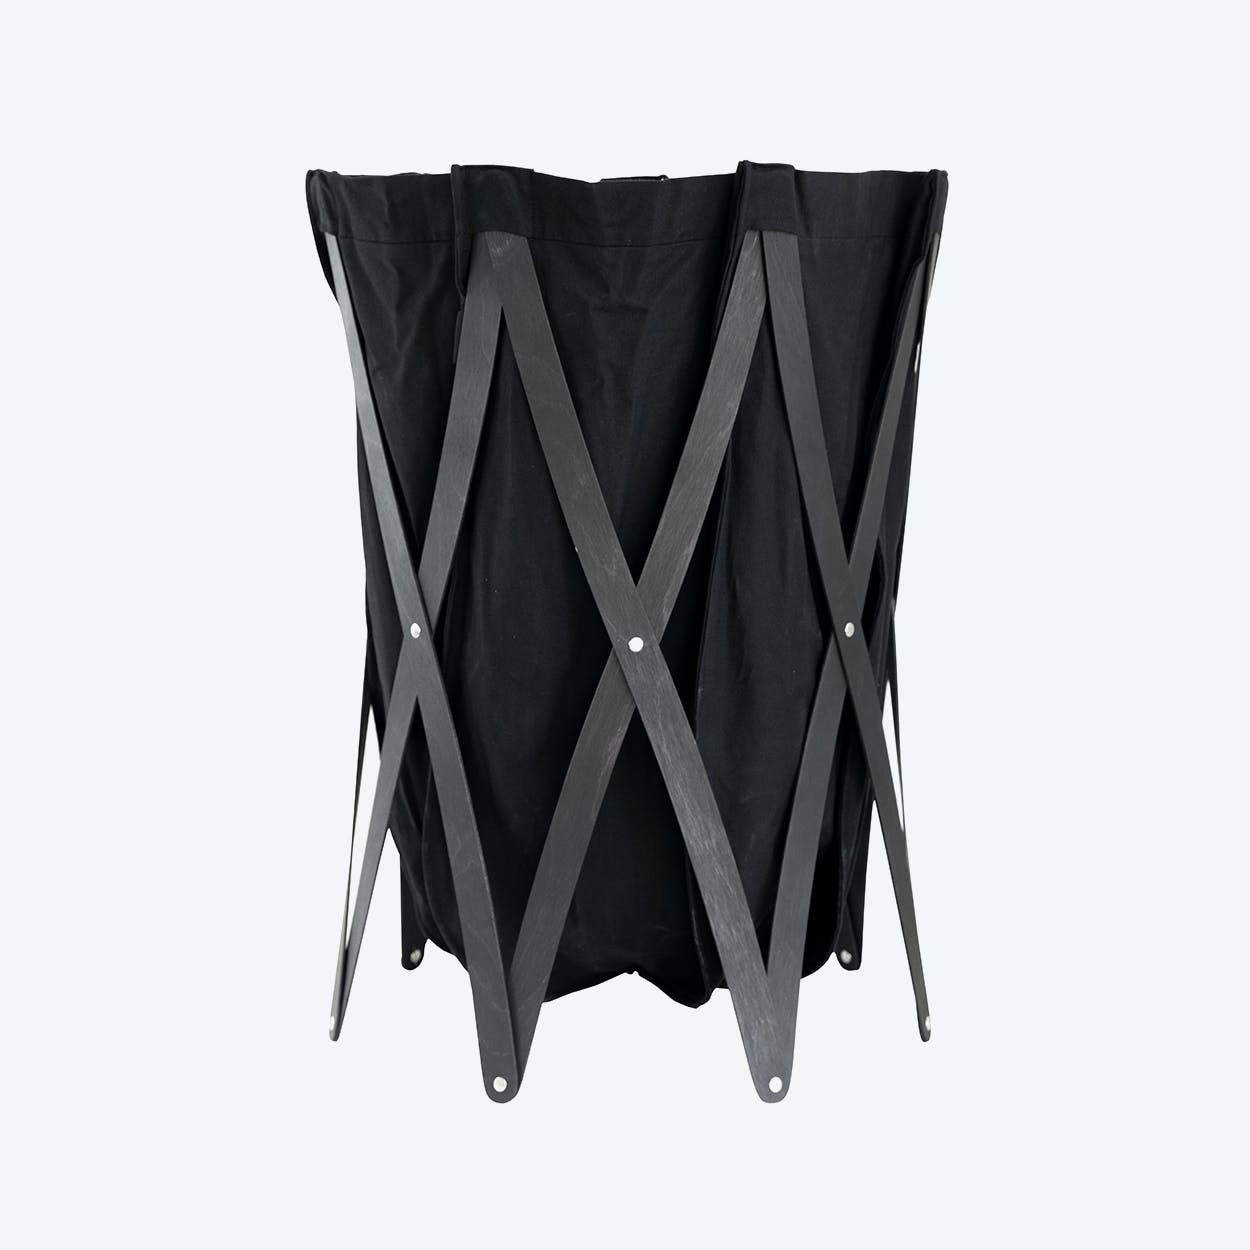 Marie Pi Laundry Basket in Anthracite/Black